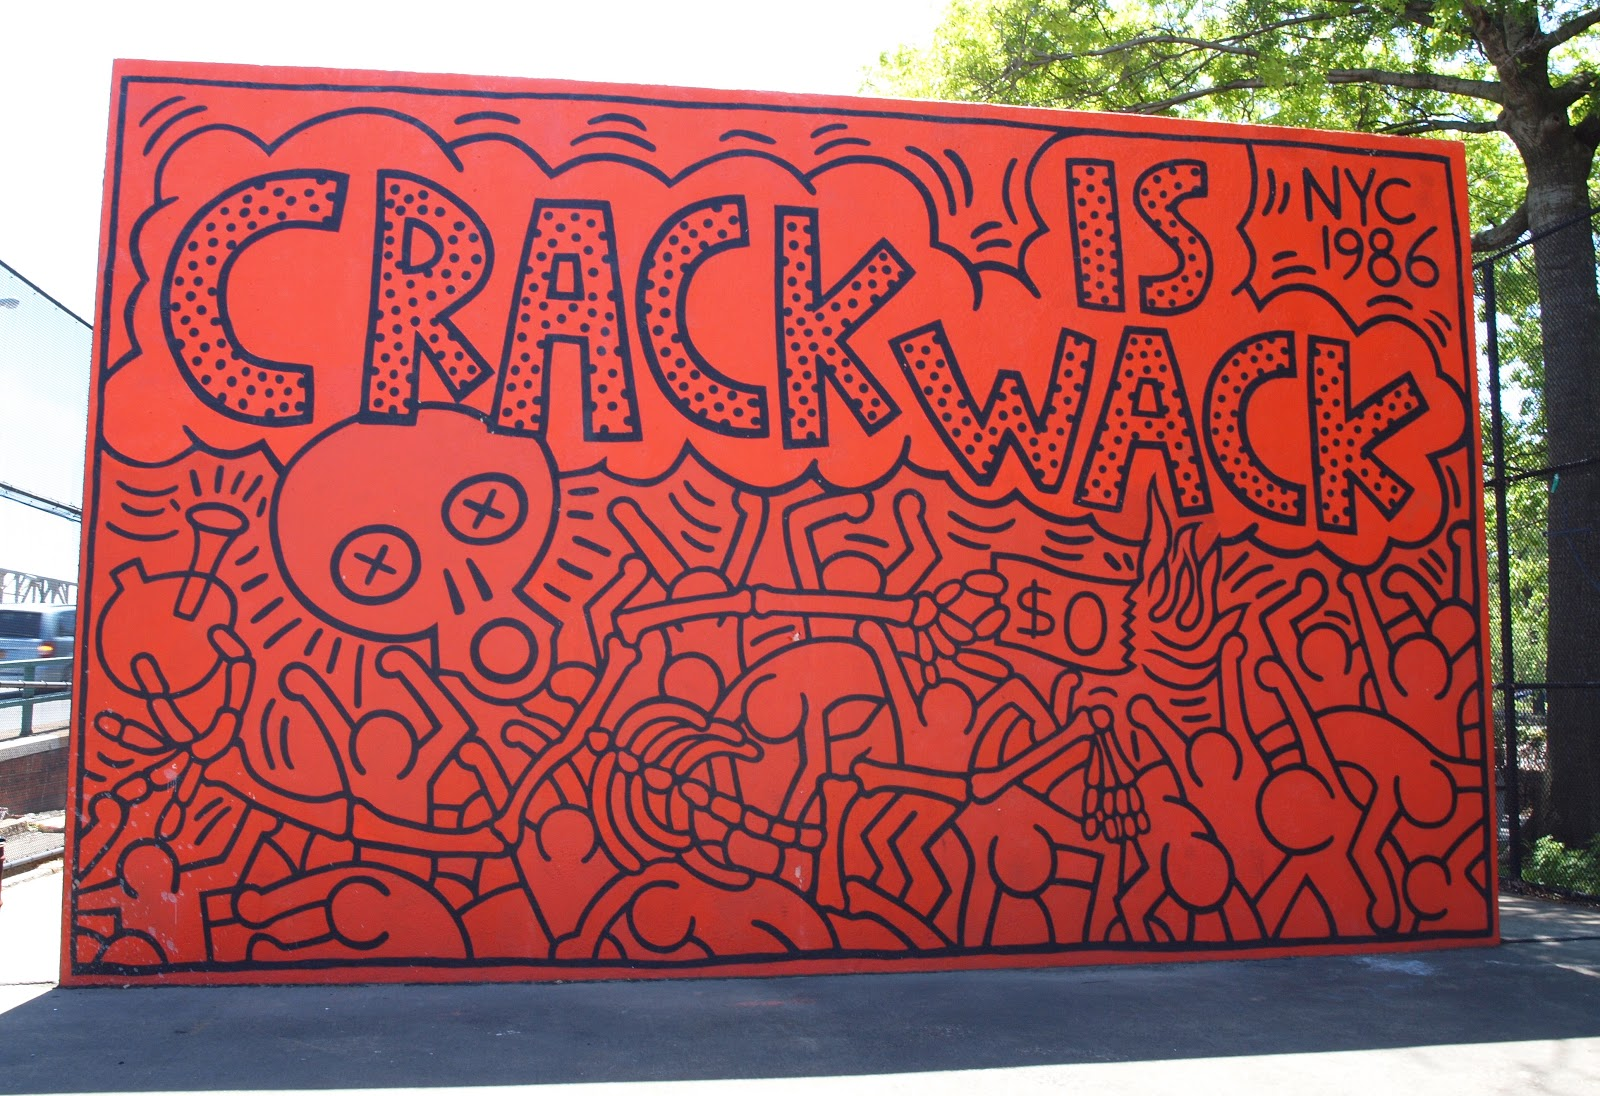 Scribbles and photos expedition keith haring for Crack is wack keith haring mural